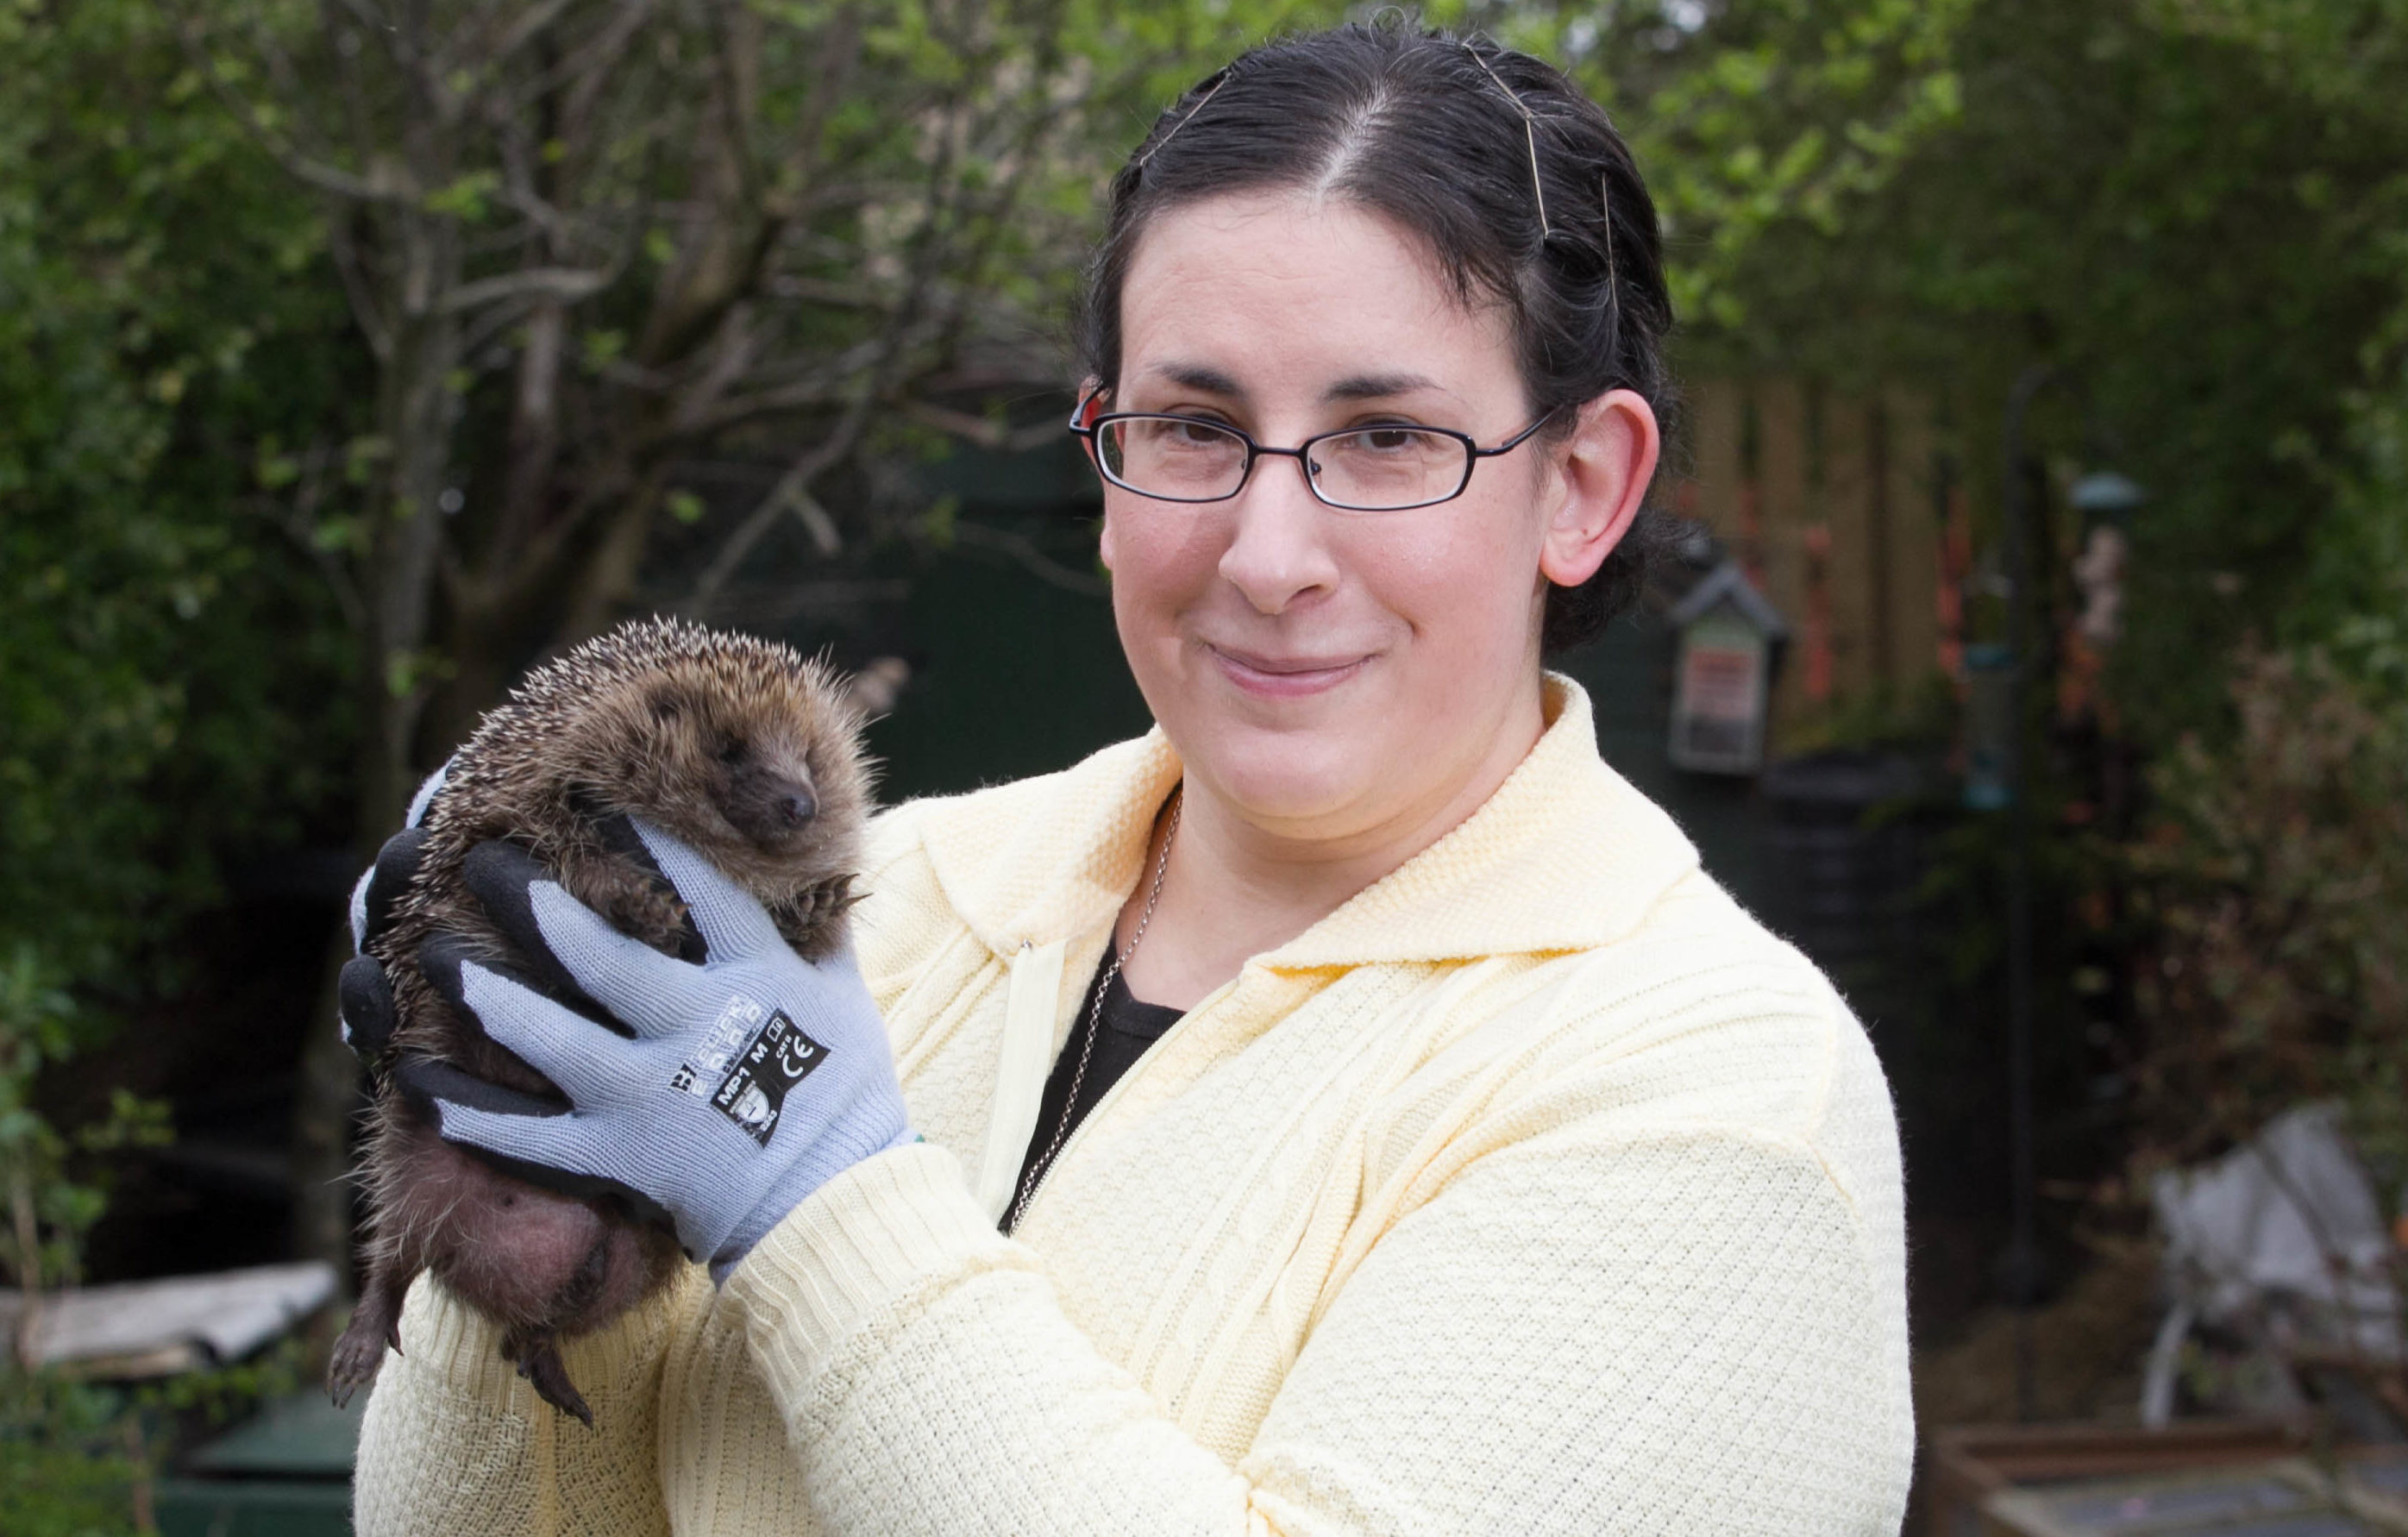 Nadia Al-Dujaii runs Forth Hedgehog Hospital from her home in Roysth (Chris Austin / DC Thomson)